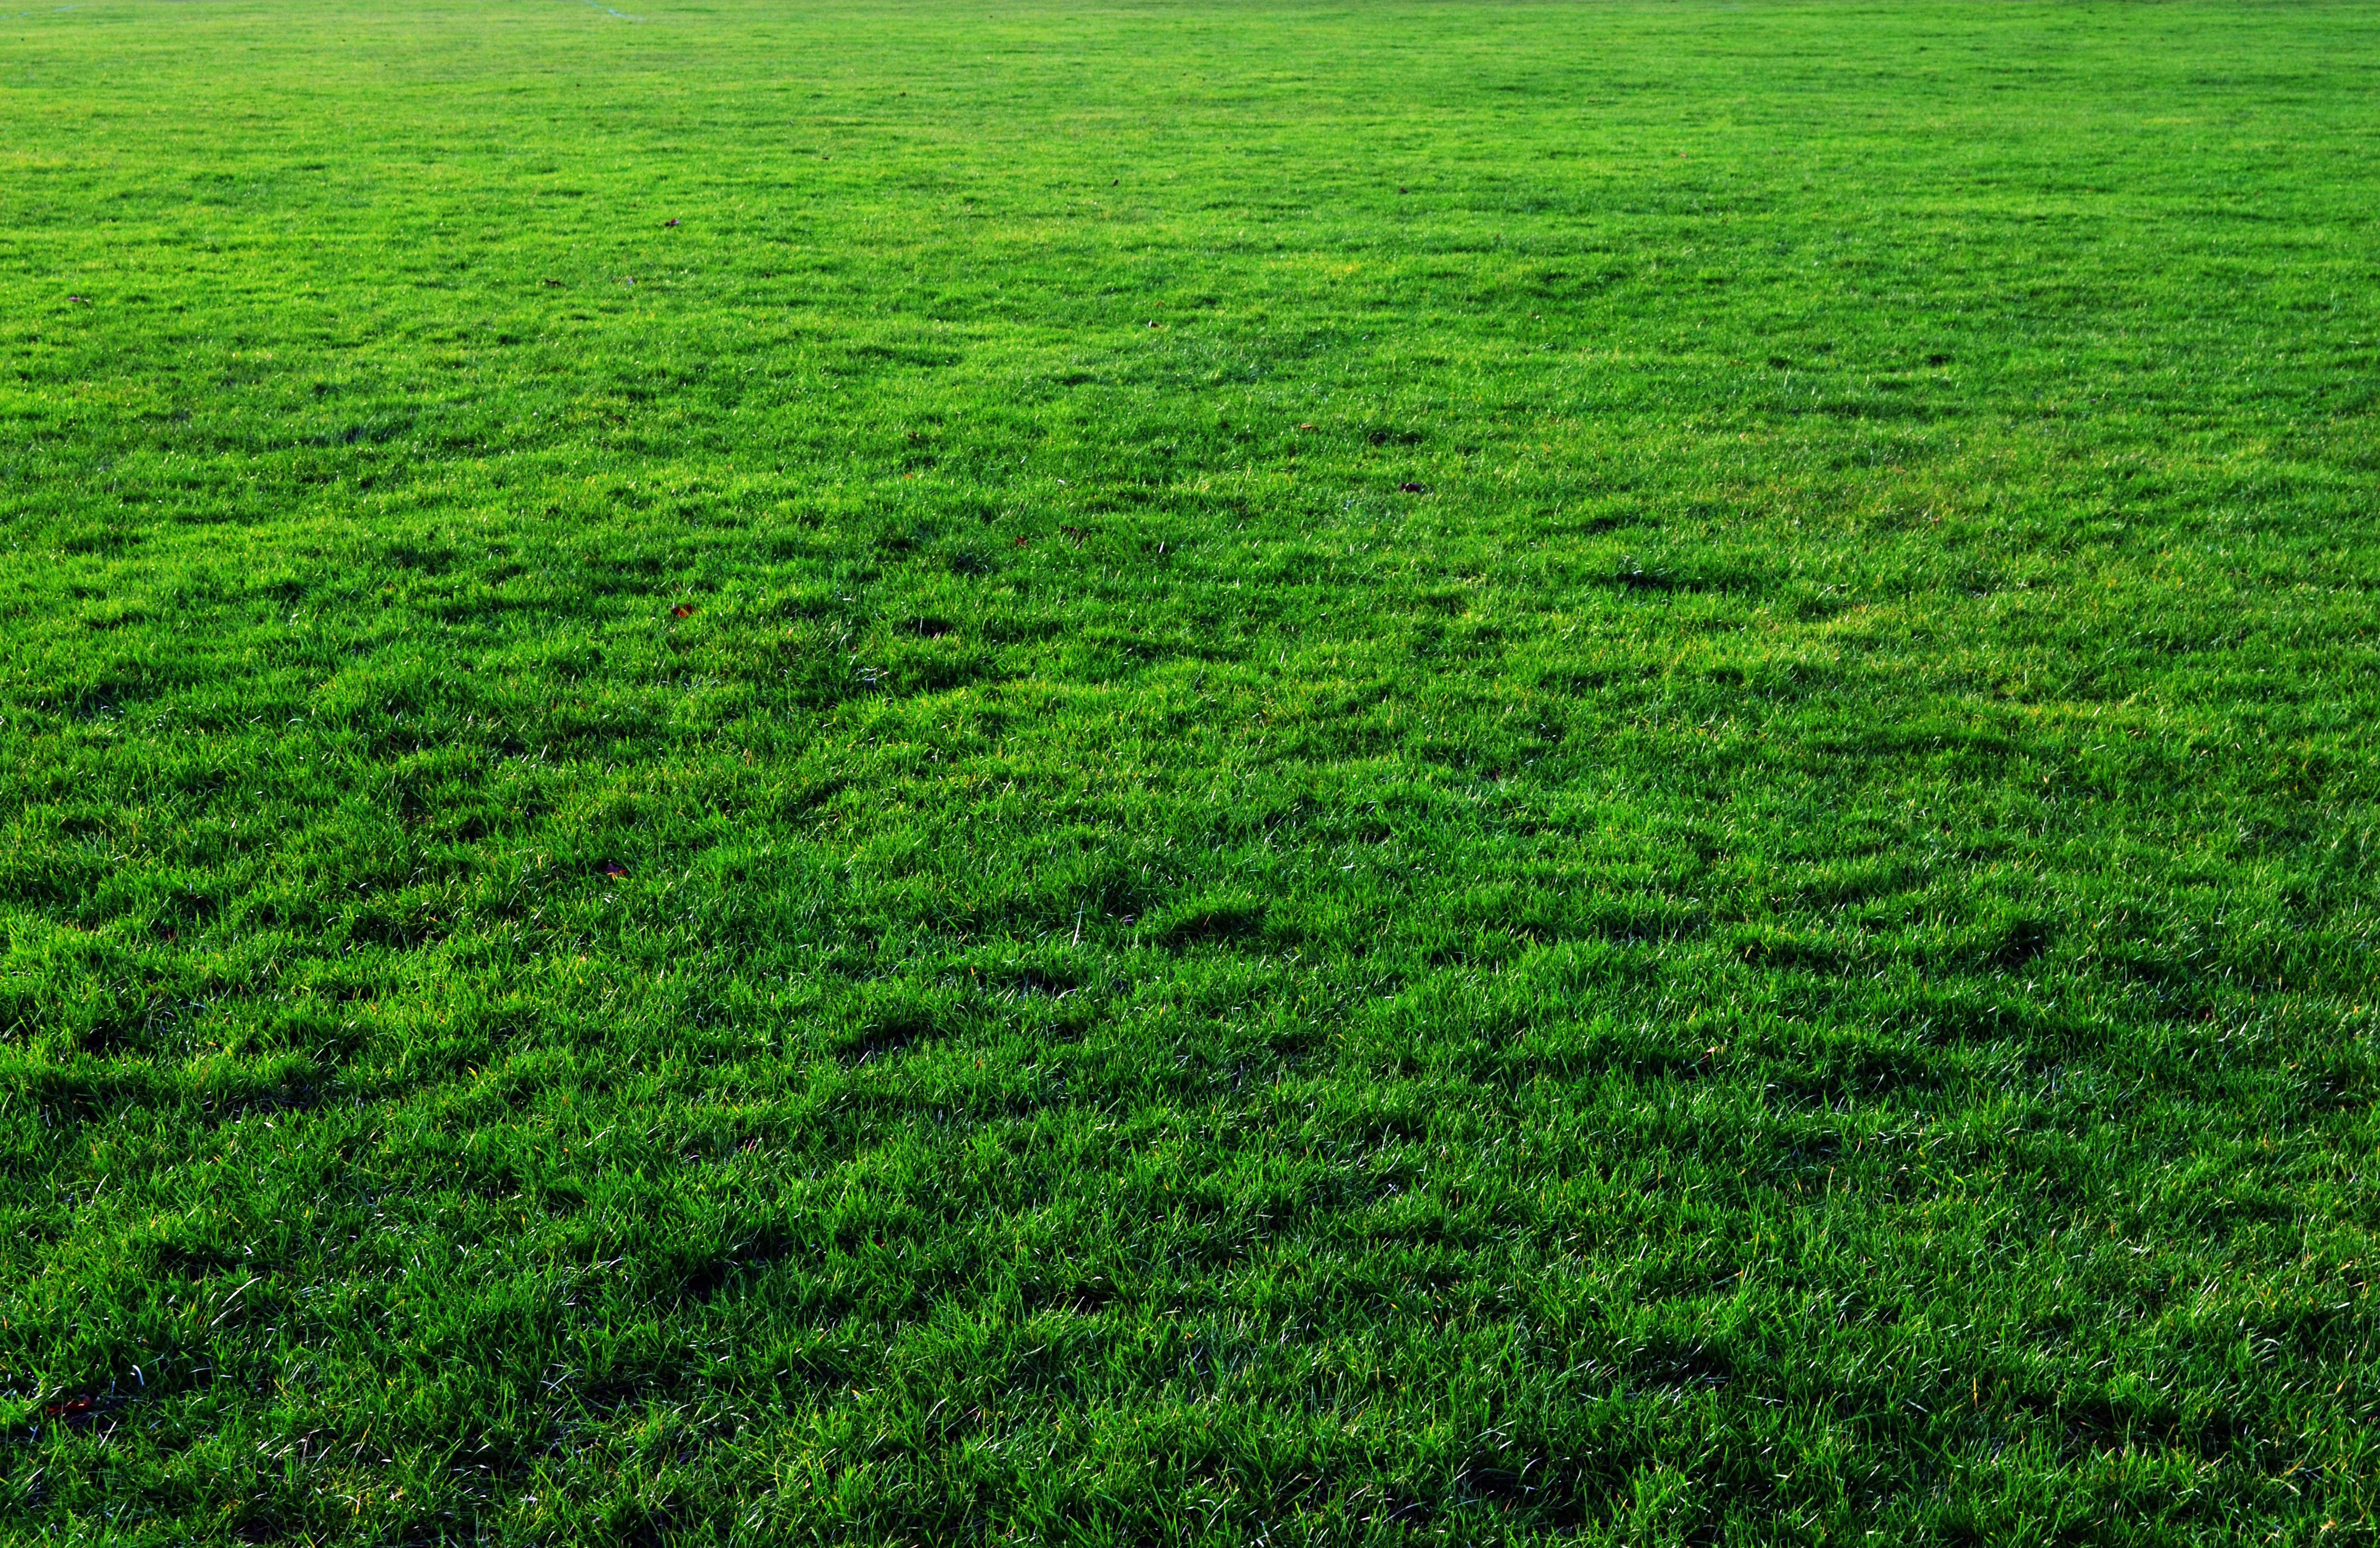 Seven Grass Textures or Lawn Background Images www 5174x3366